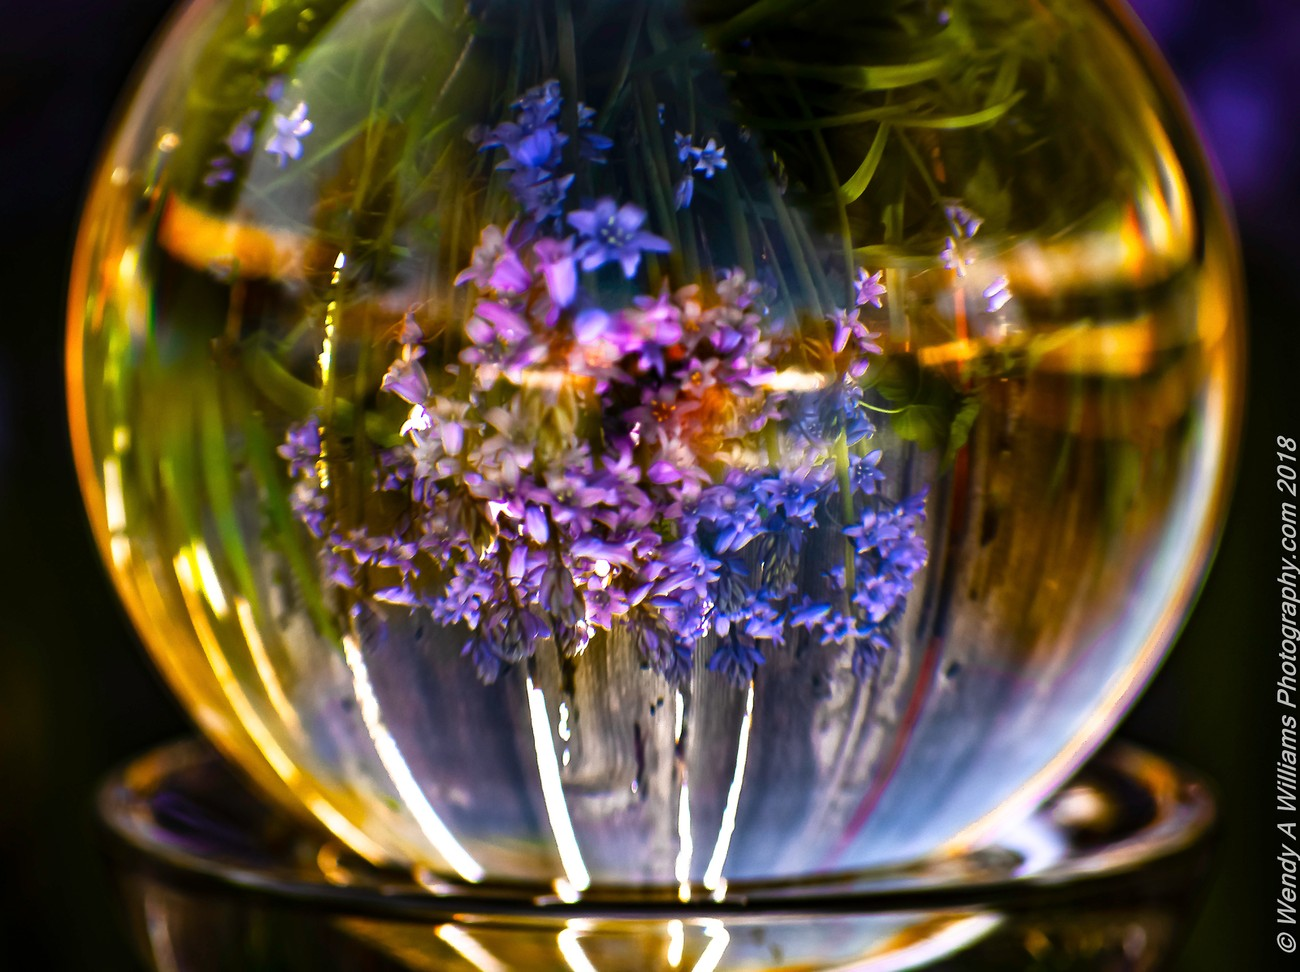 Using my LensBall to play with nature and spring shots. It is a way of celebrating earth day